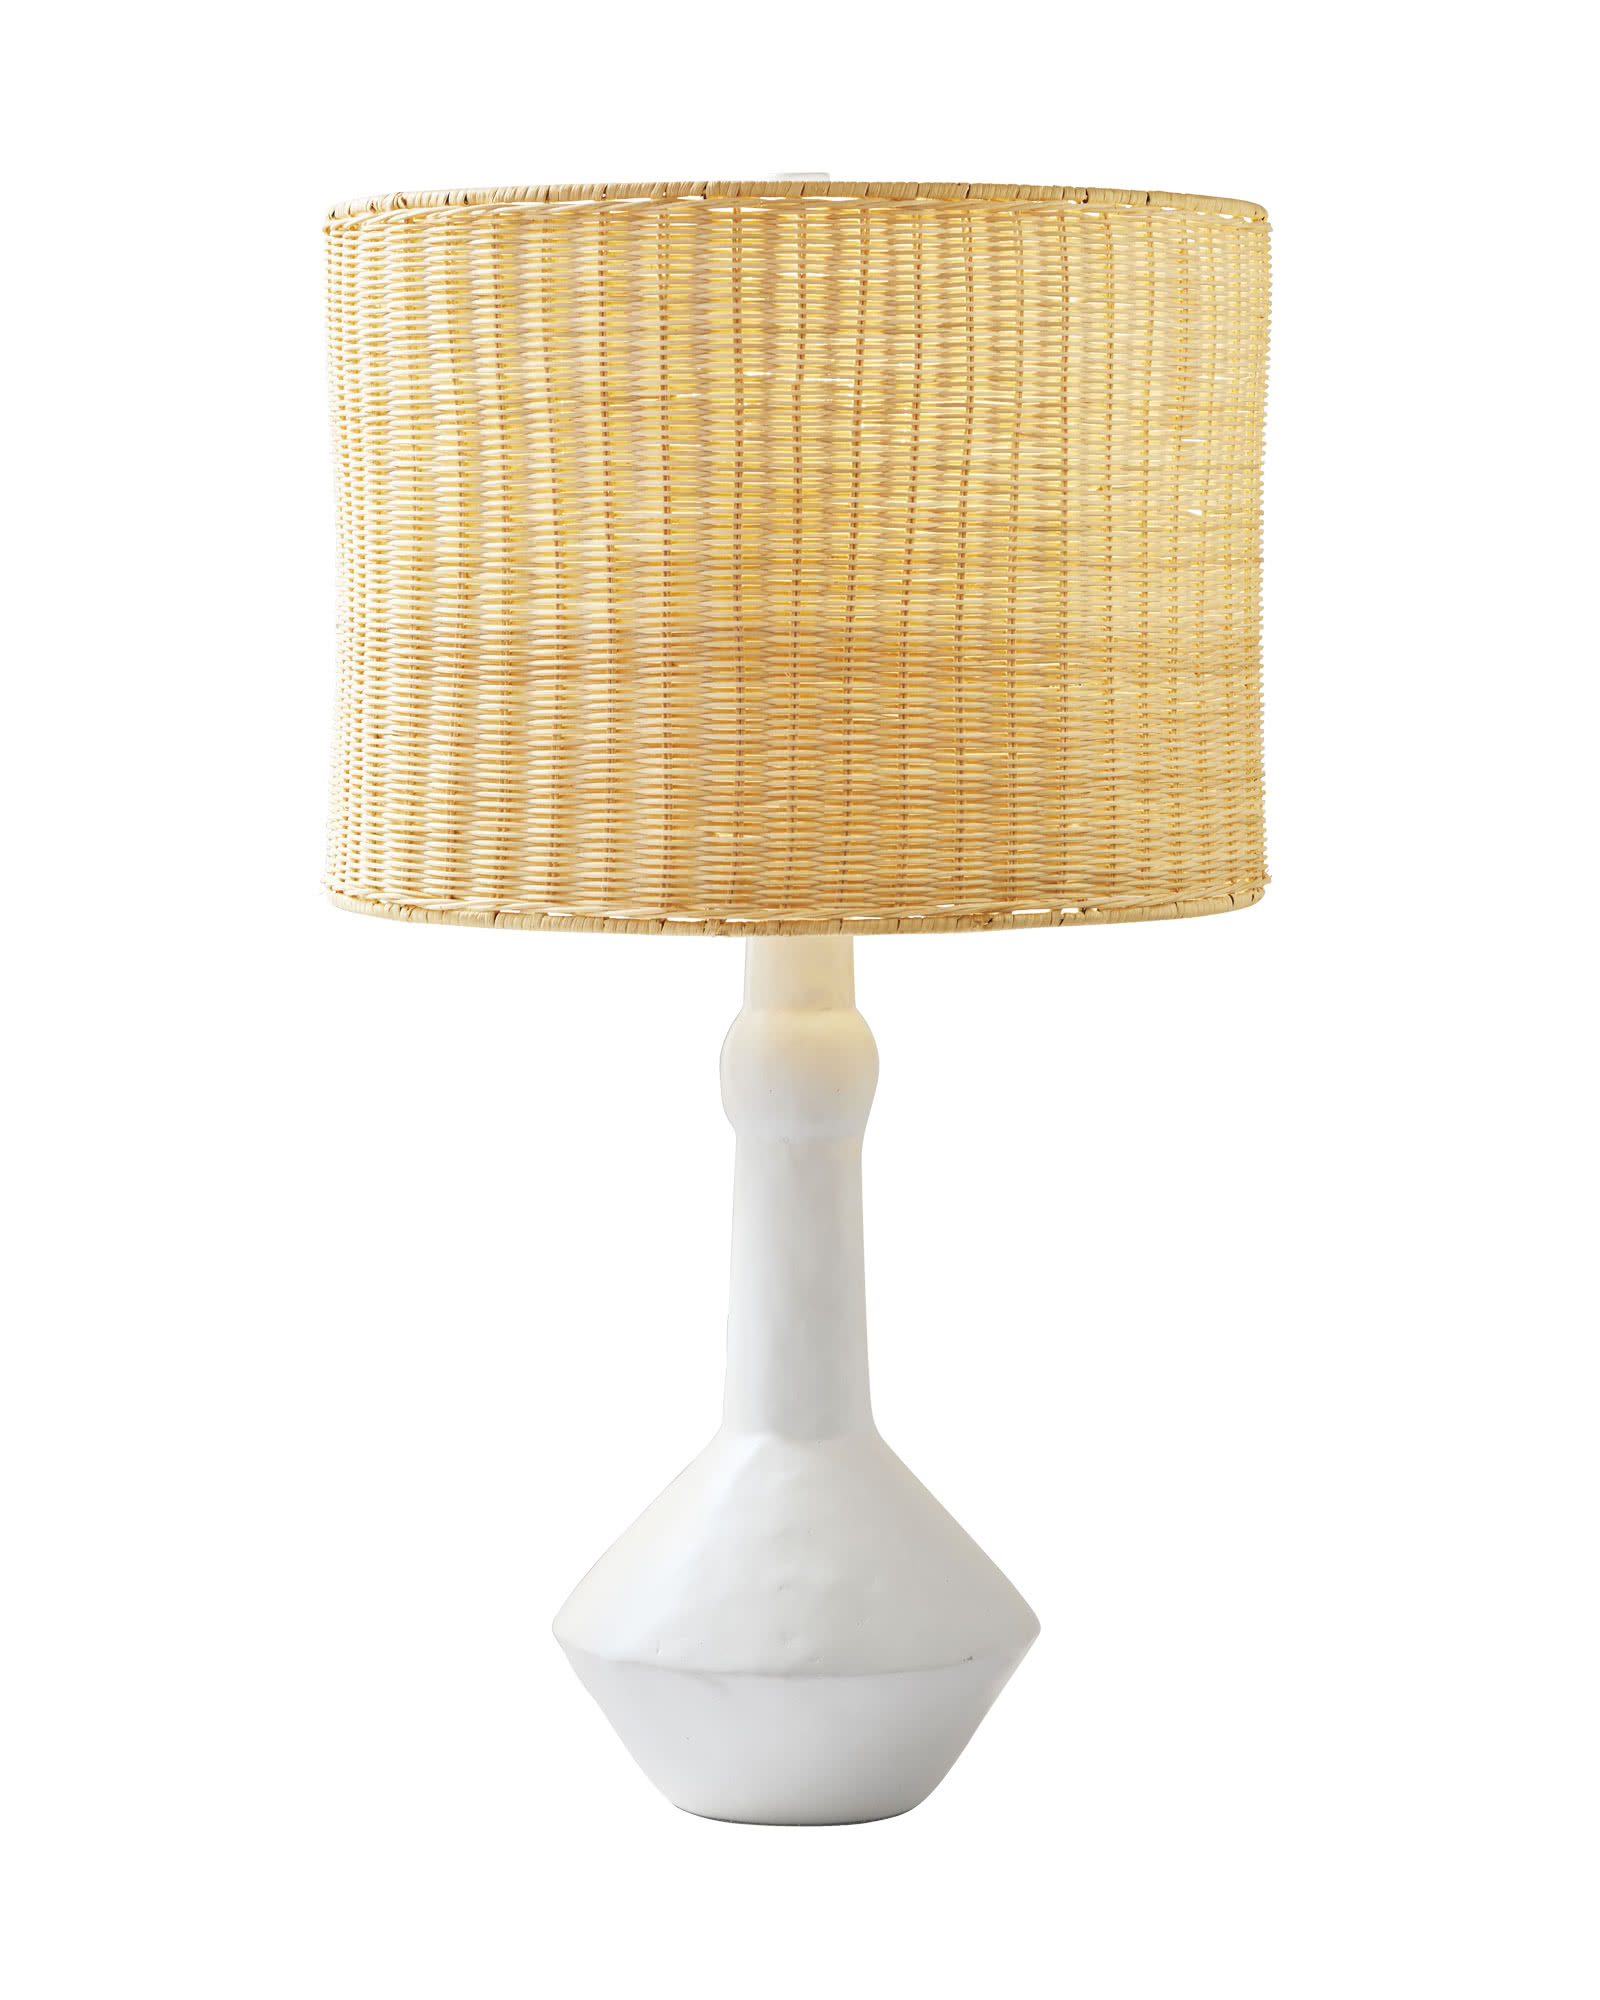 Large Brighton Table Lamp, Wicker